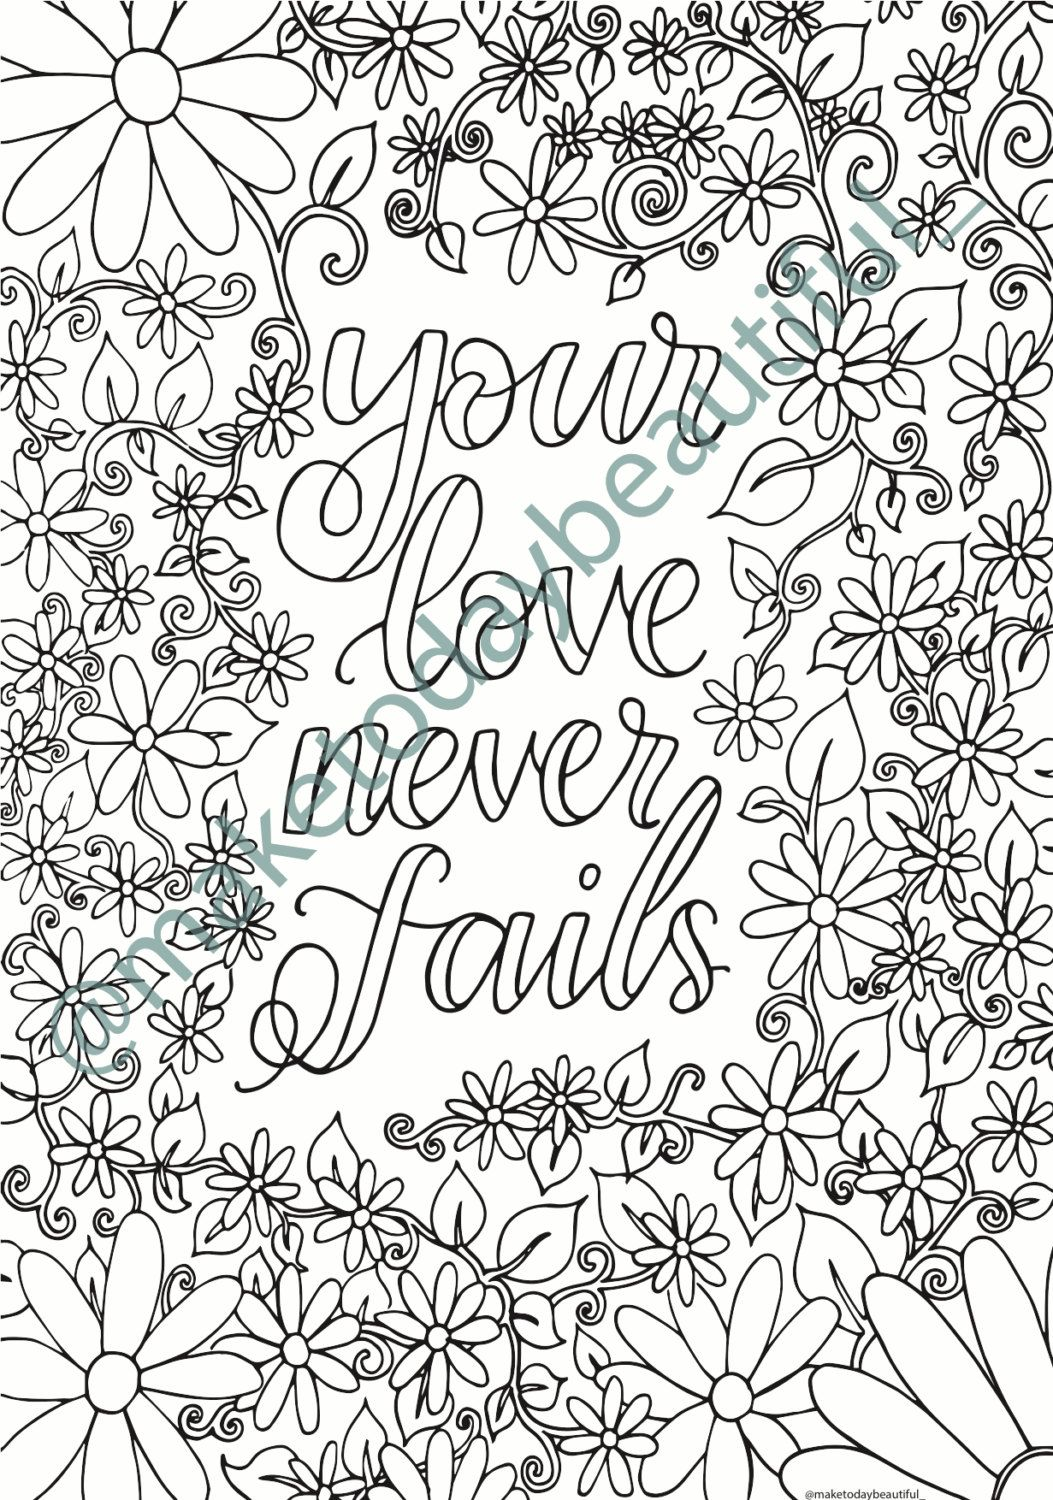 Colouring Page | Your Love Never Fails | Christian Colouring ...